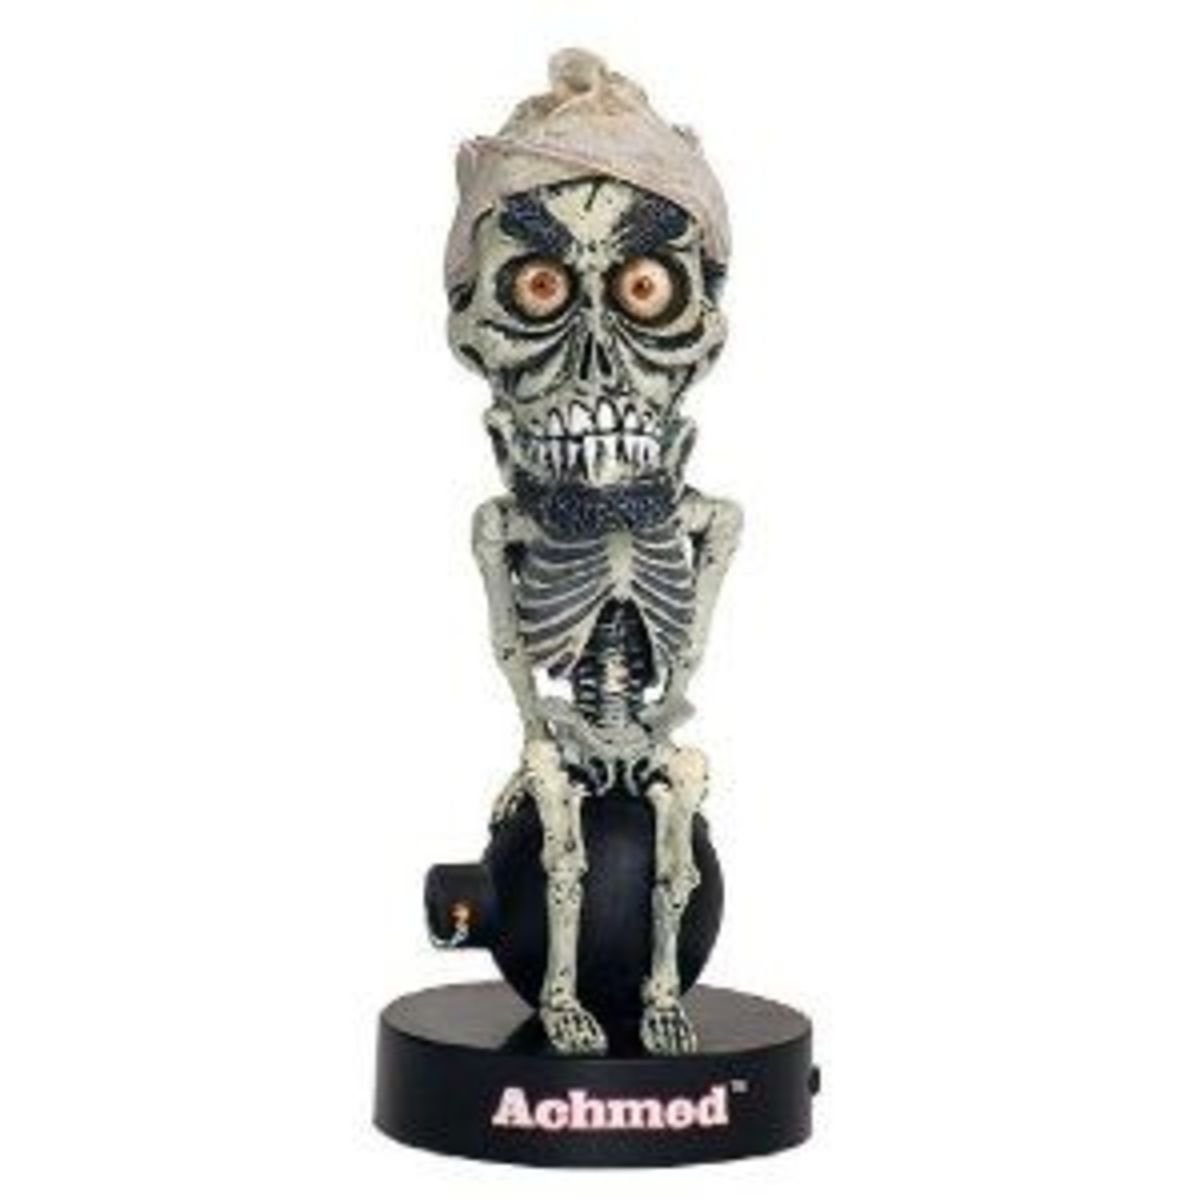 Jeff dunham gift ideas for Achmed the dead terrorist halloween decoration